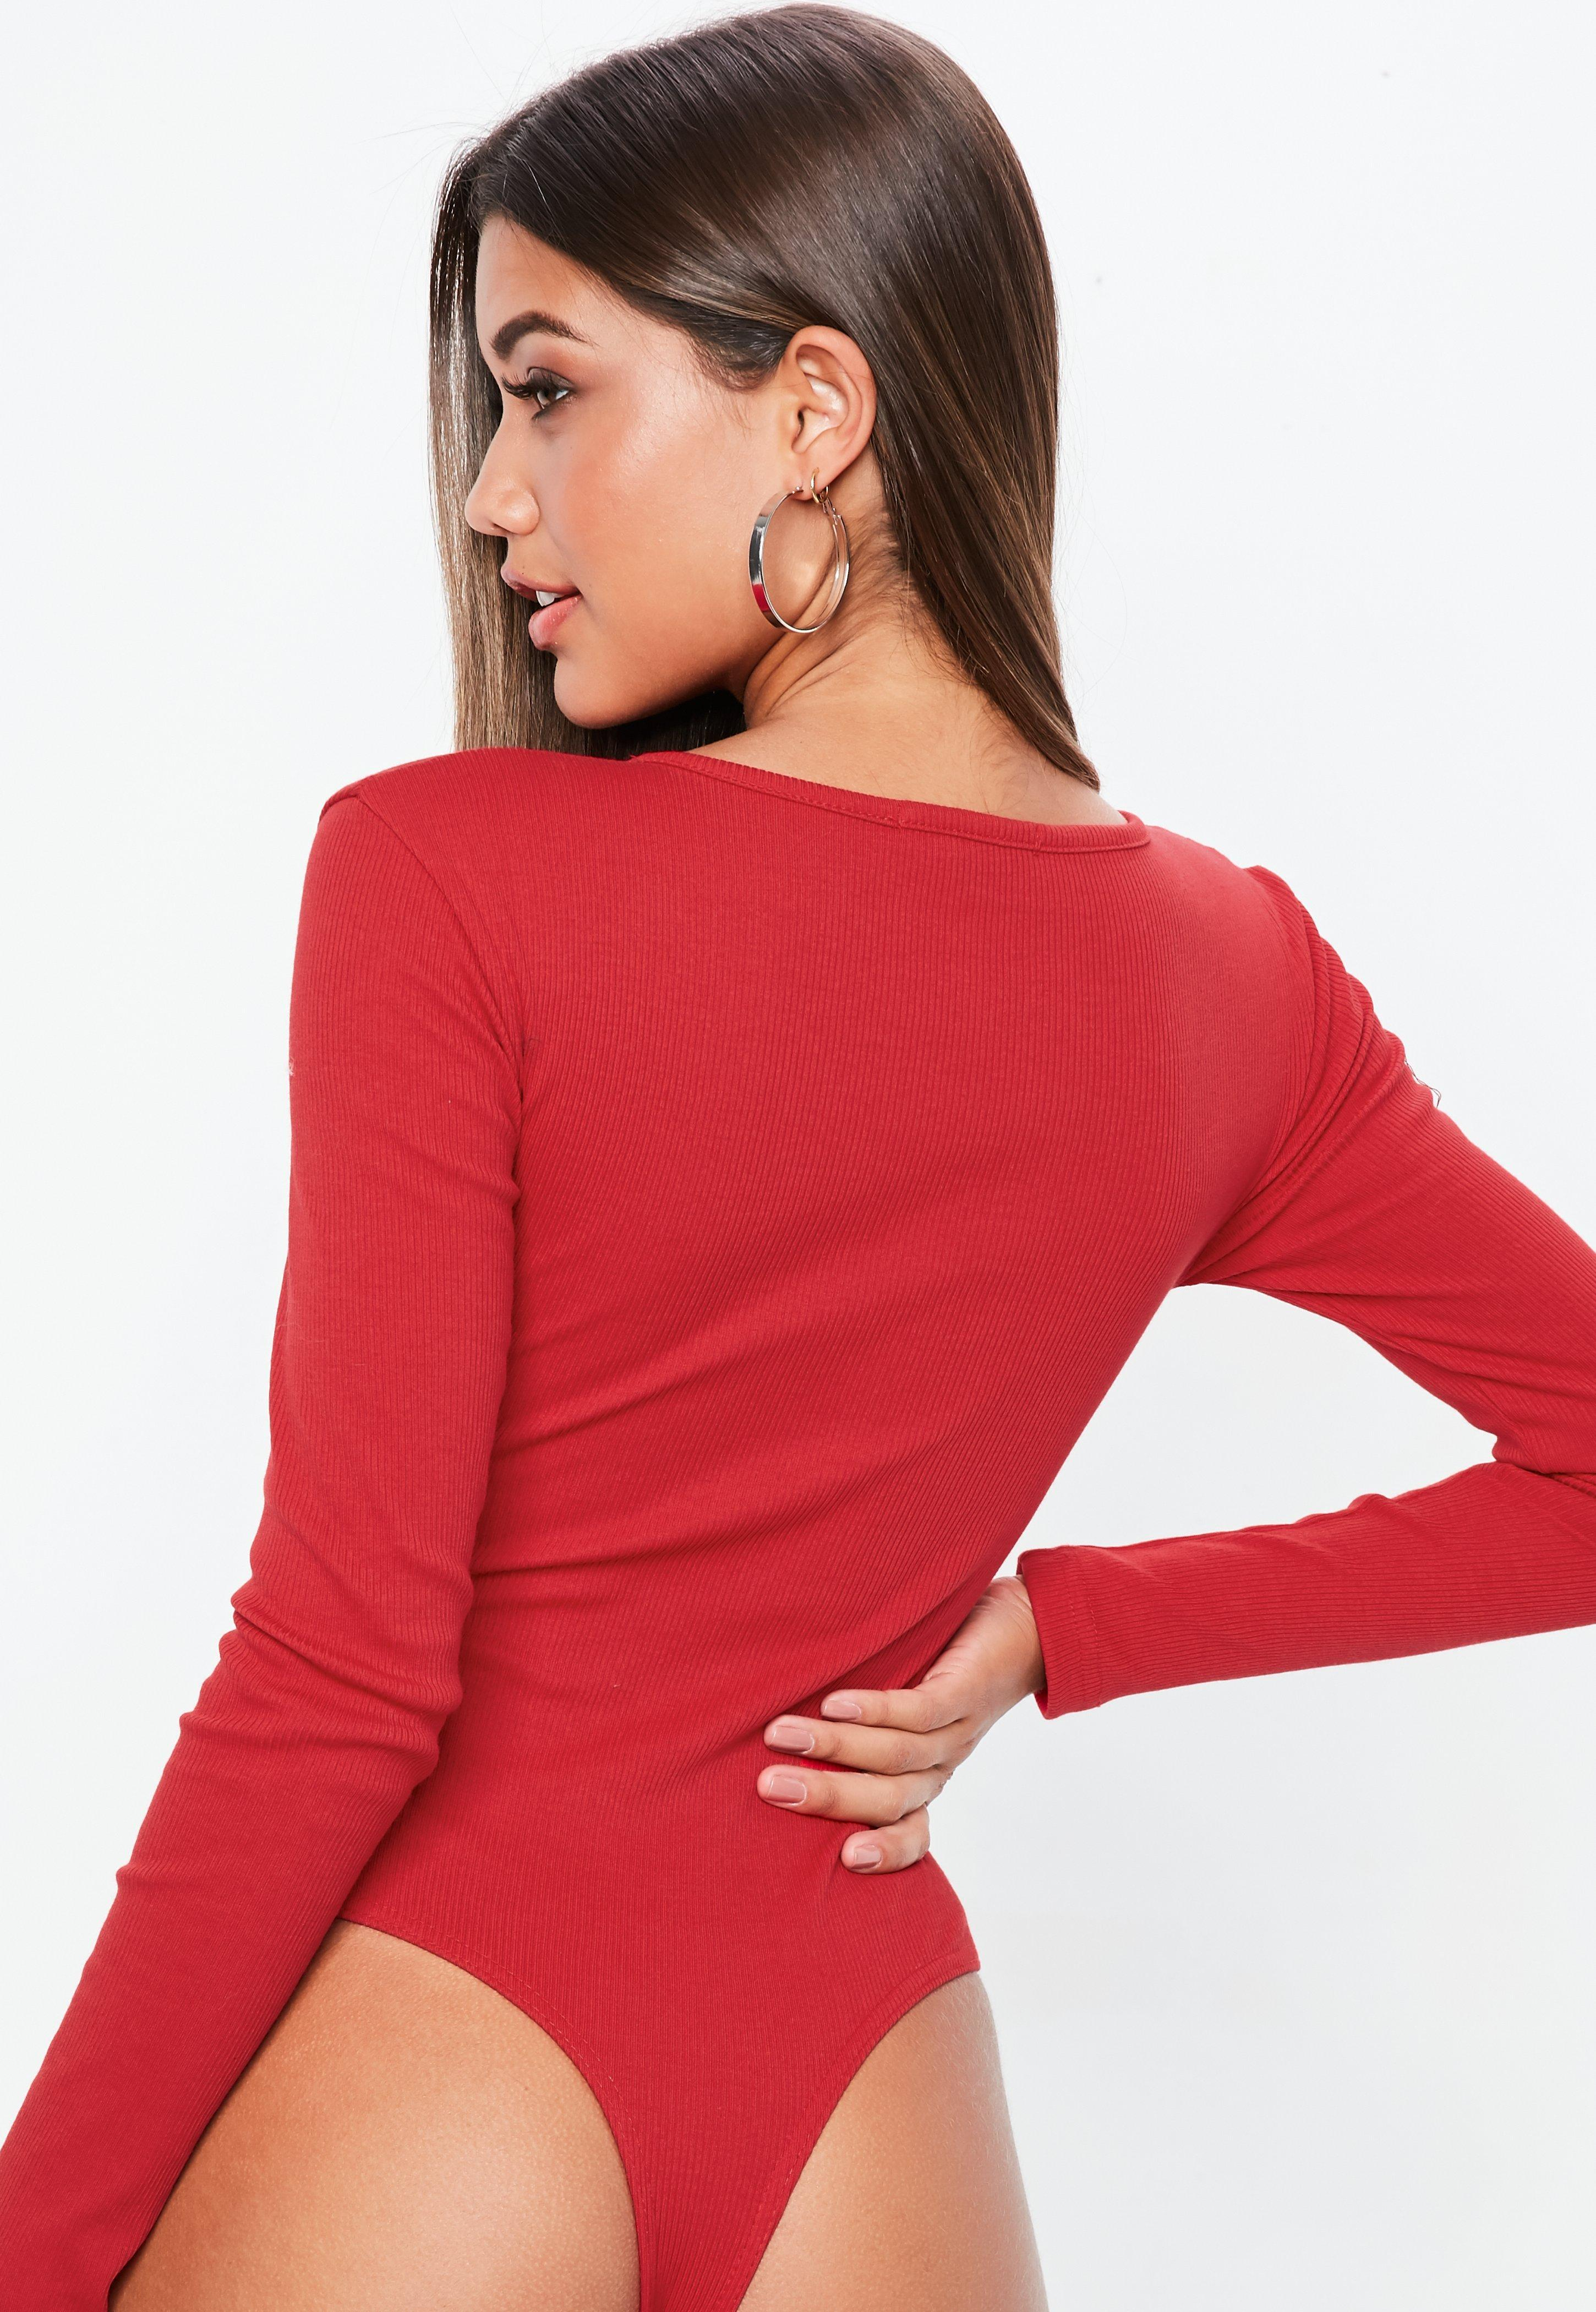 Lyst - Missguided Red Zip Front Scoop Neck Long Sleeve Rib Bodysuit ... 9197a5443